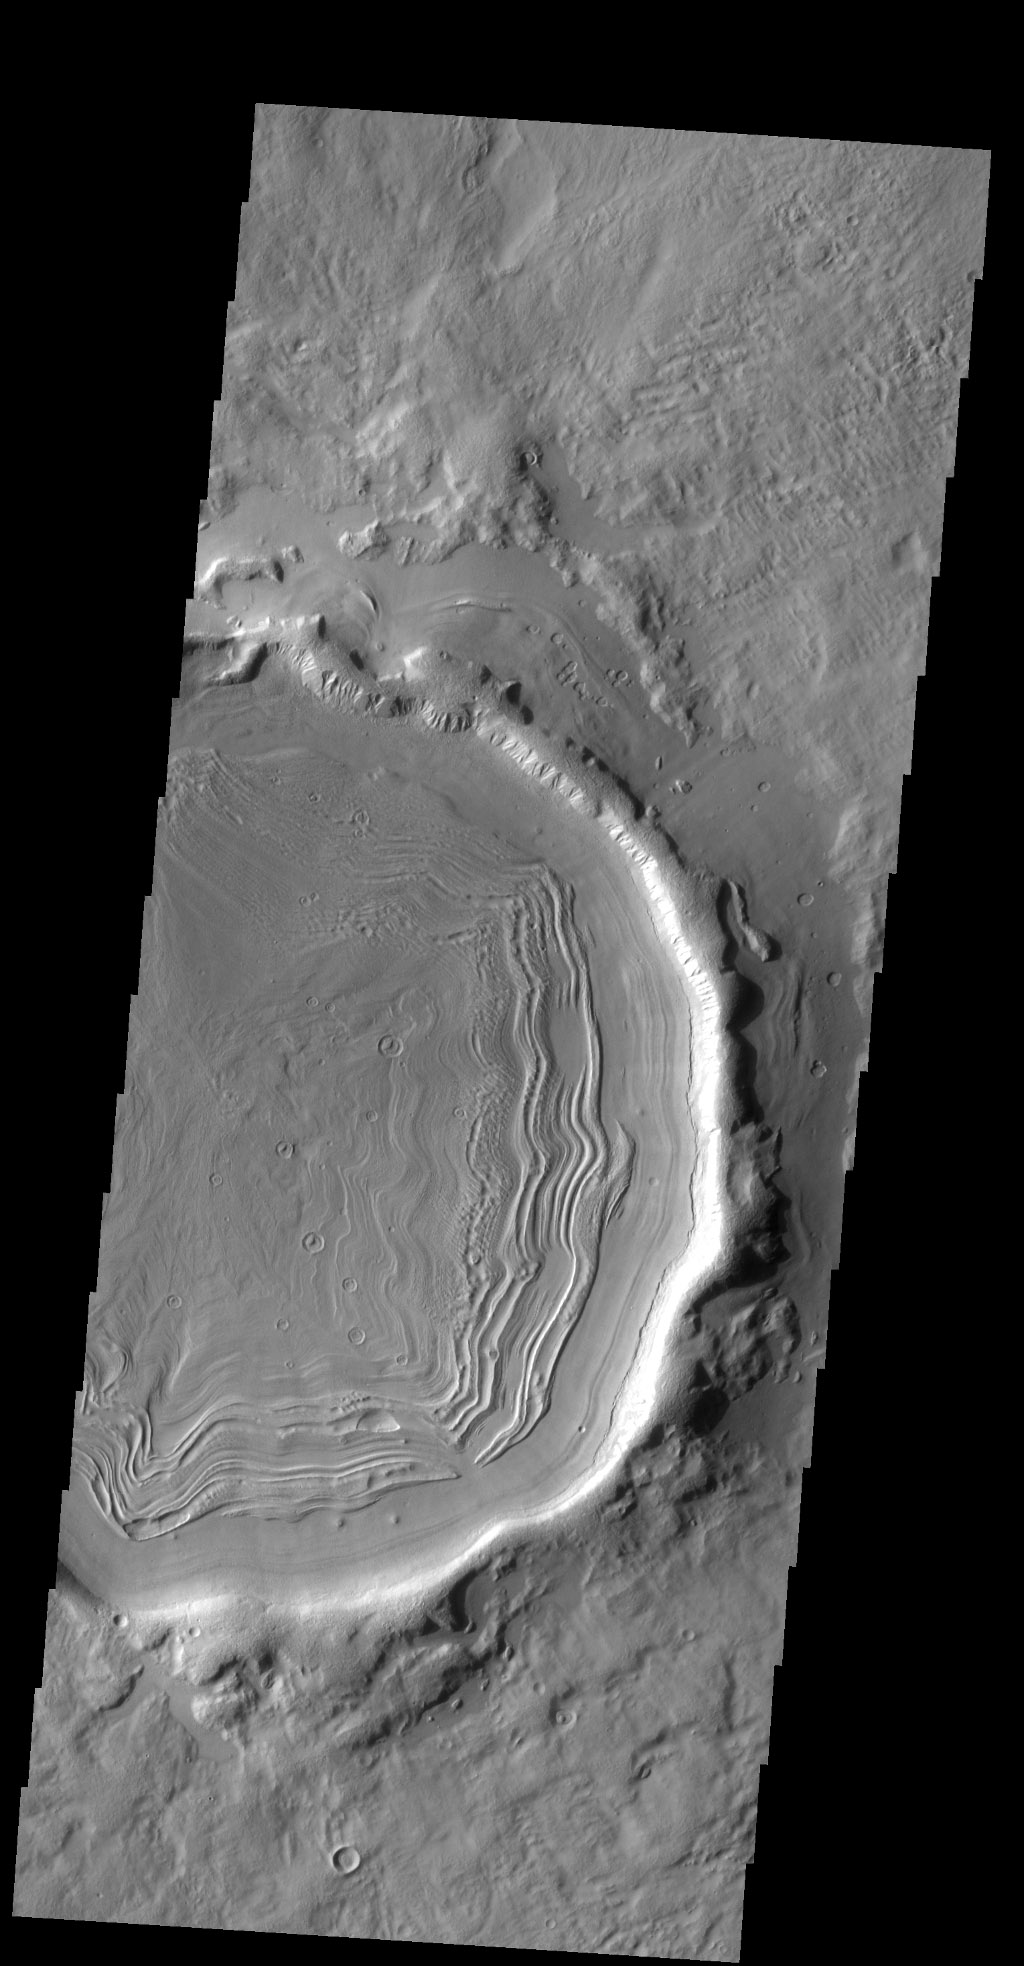 This unnamed crater in this image from NASA's 2001 Mars Odyssey spacecraft is located on the margin between Terra Sabaea and Utopia Planitia and is filled with material with a grooved surface.